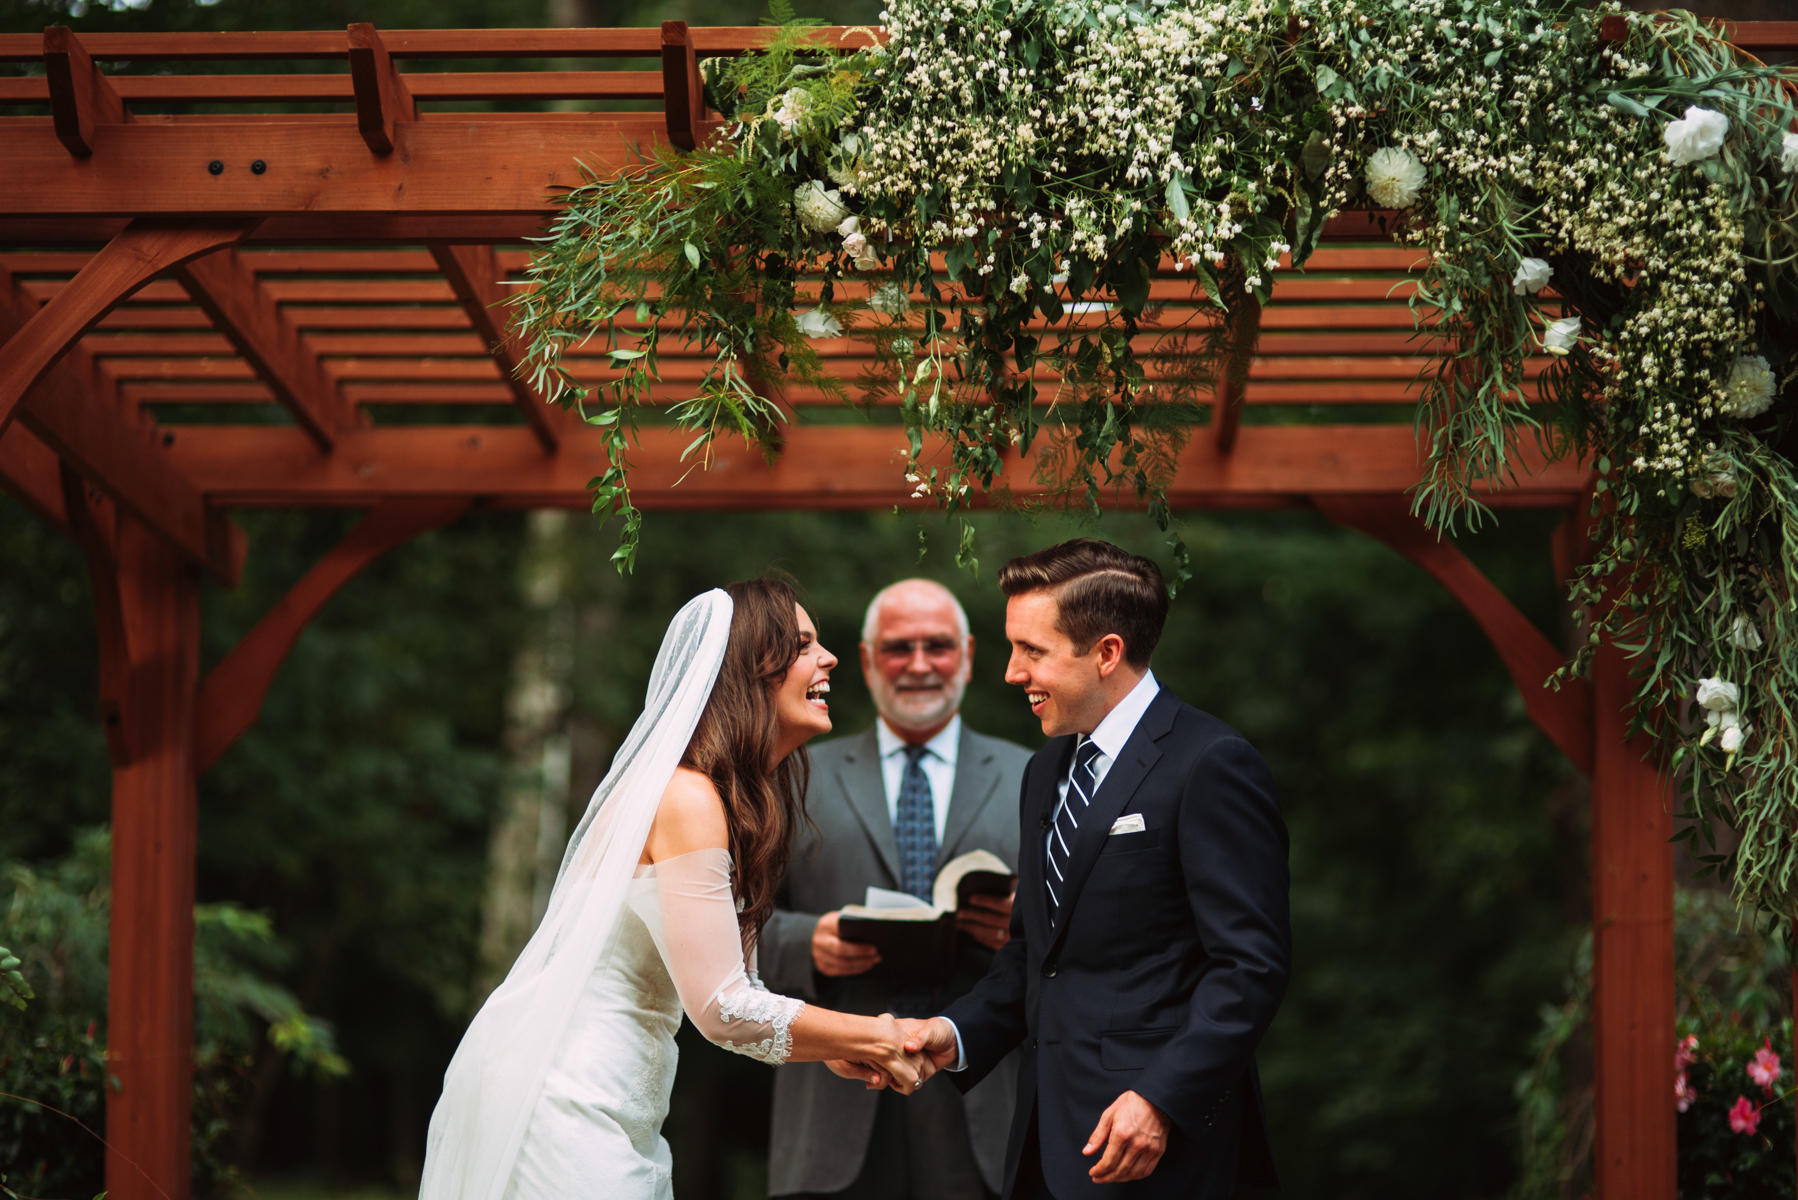 Outdoor Wedding Ceremony Ideas In Pittsburgh